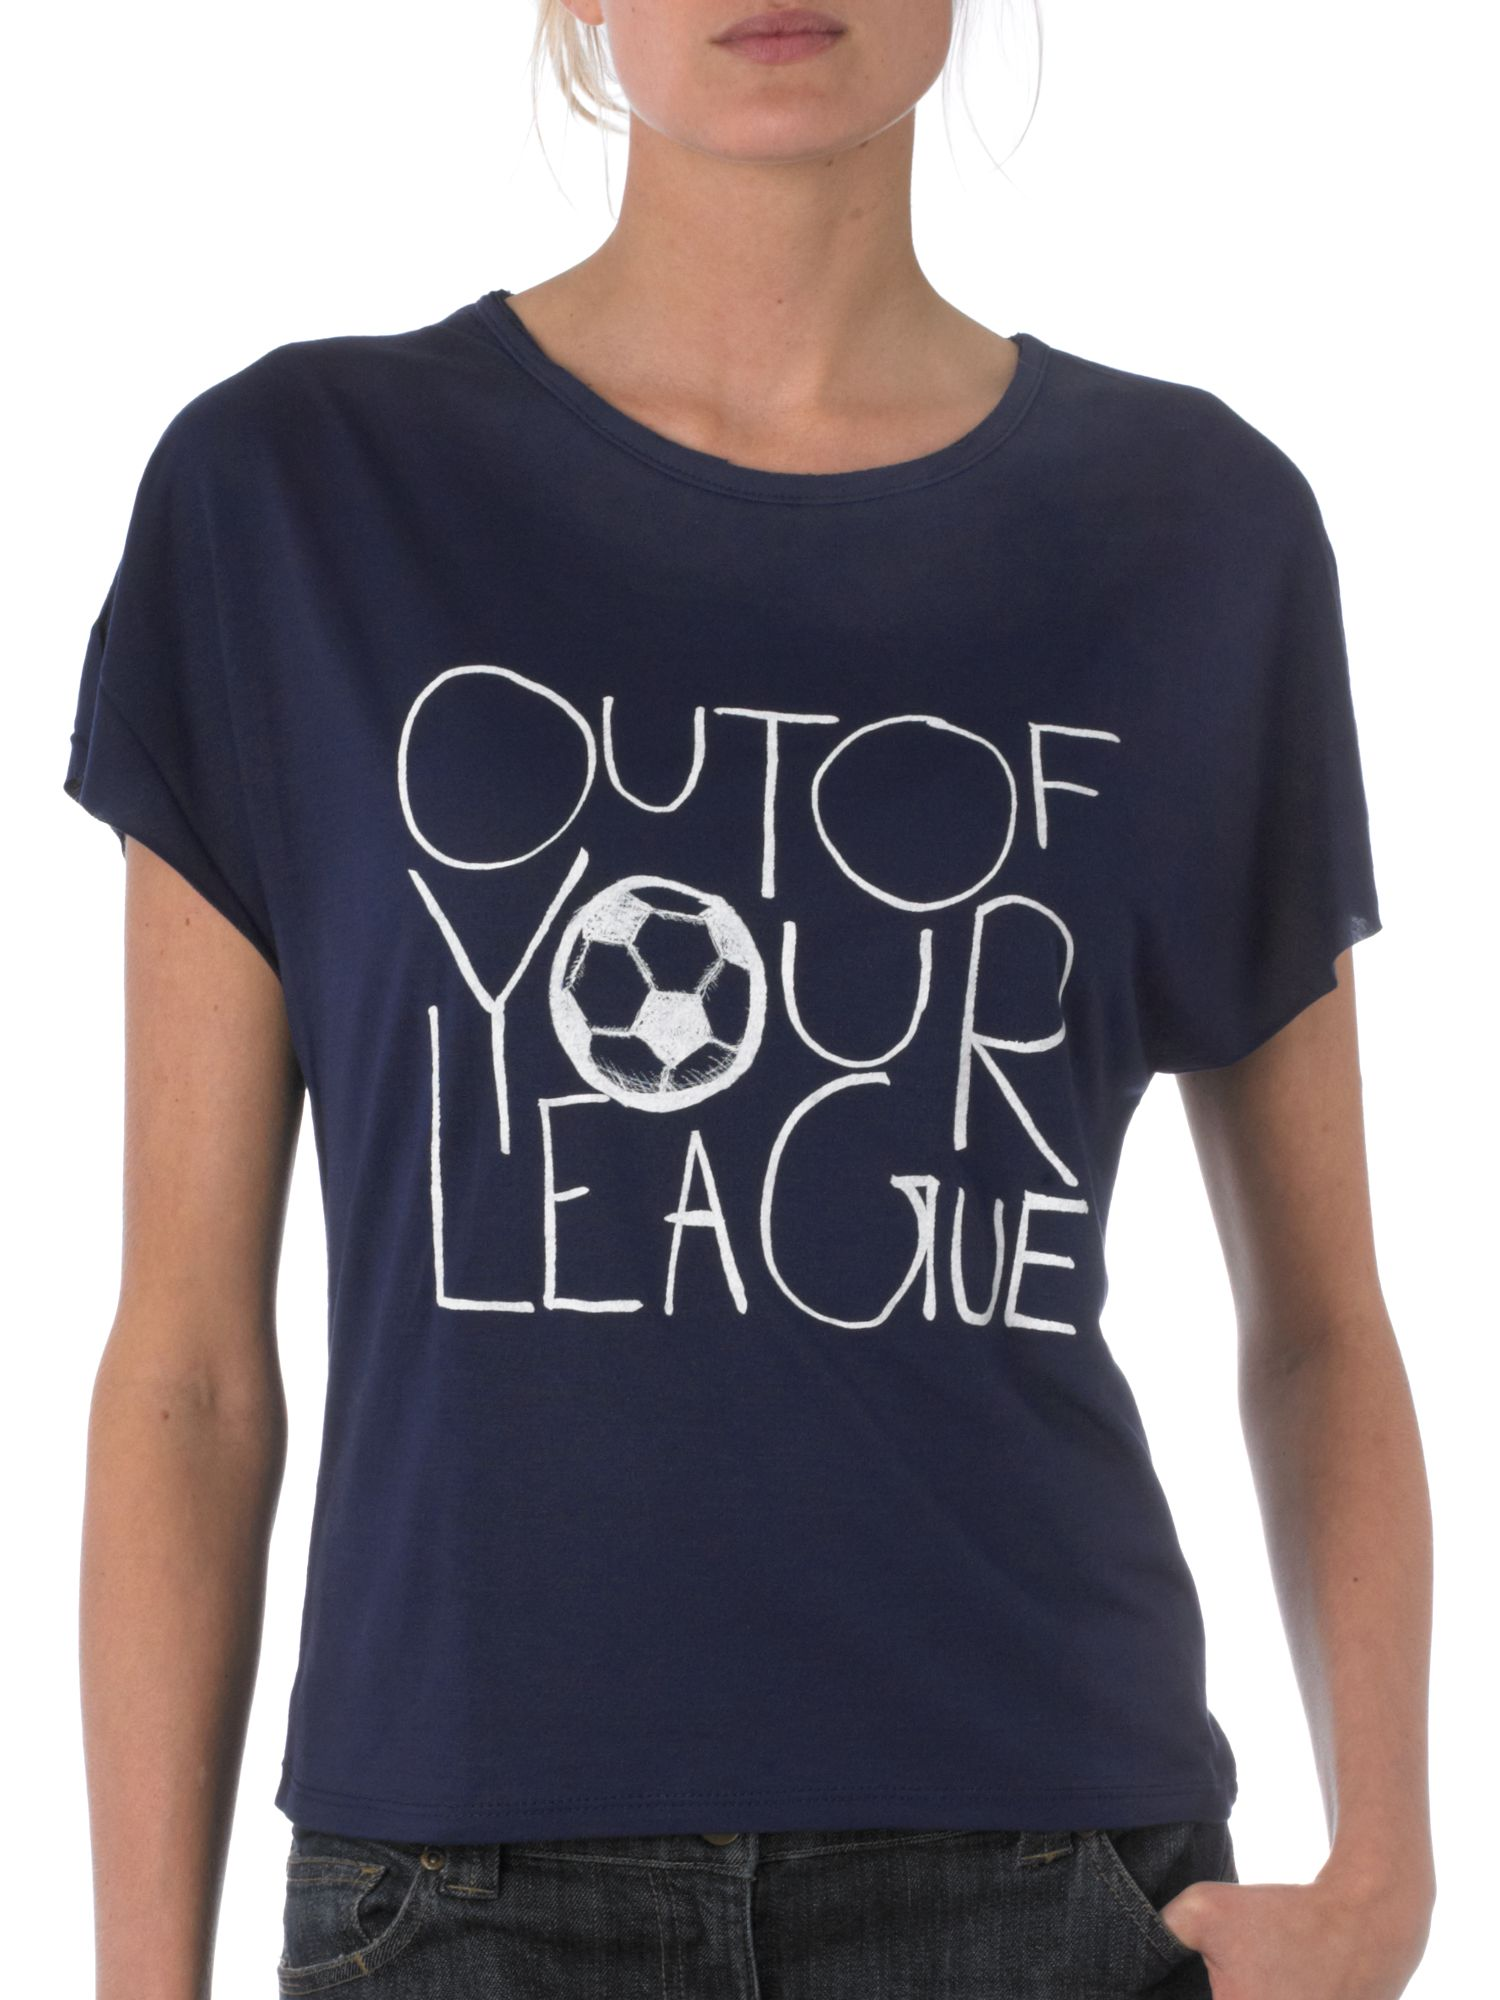 Therapy Out of your league t-shirt product image